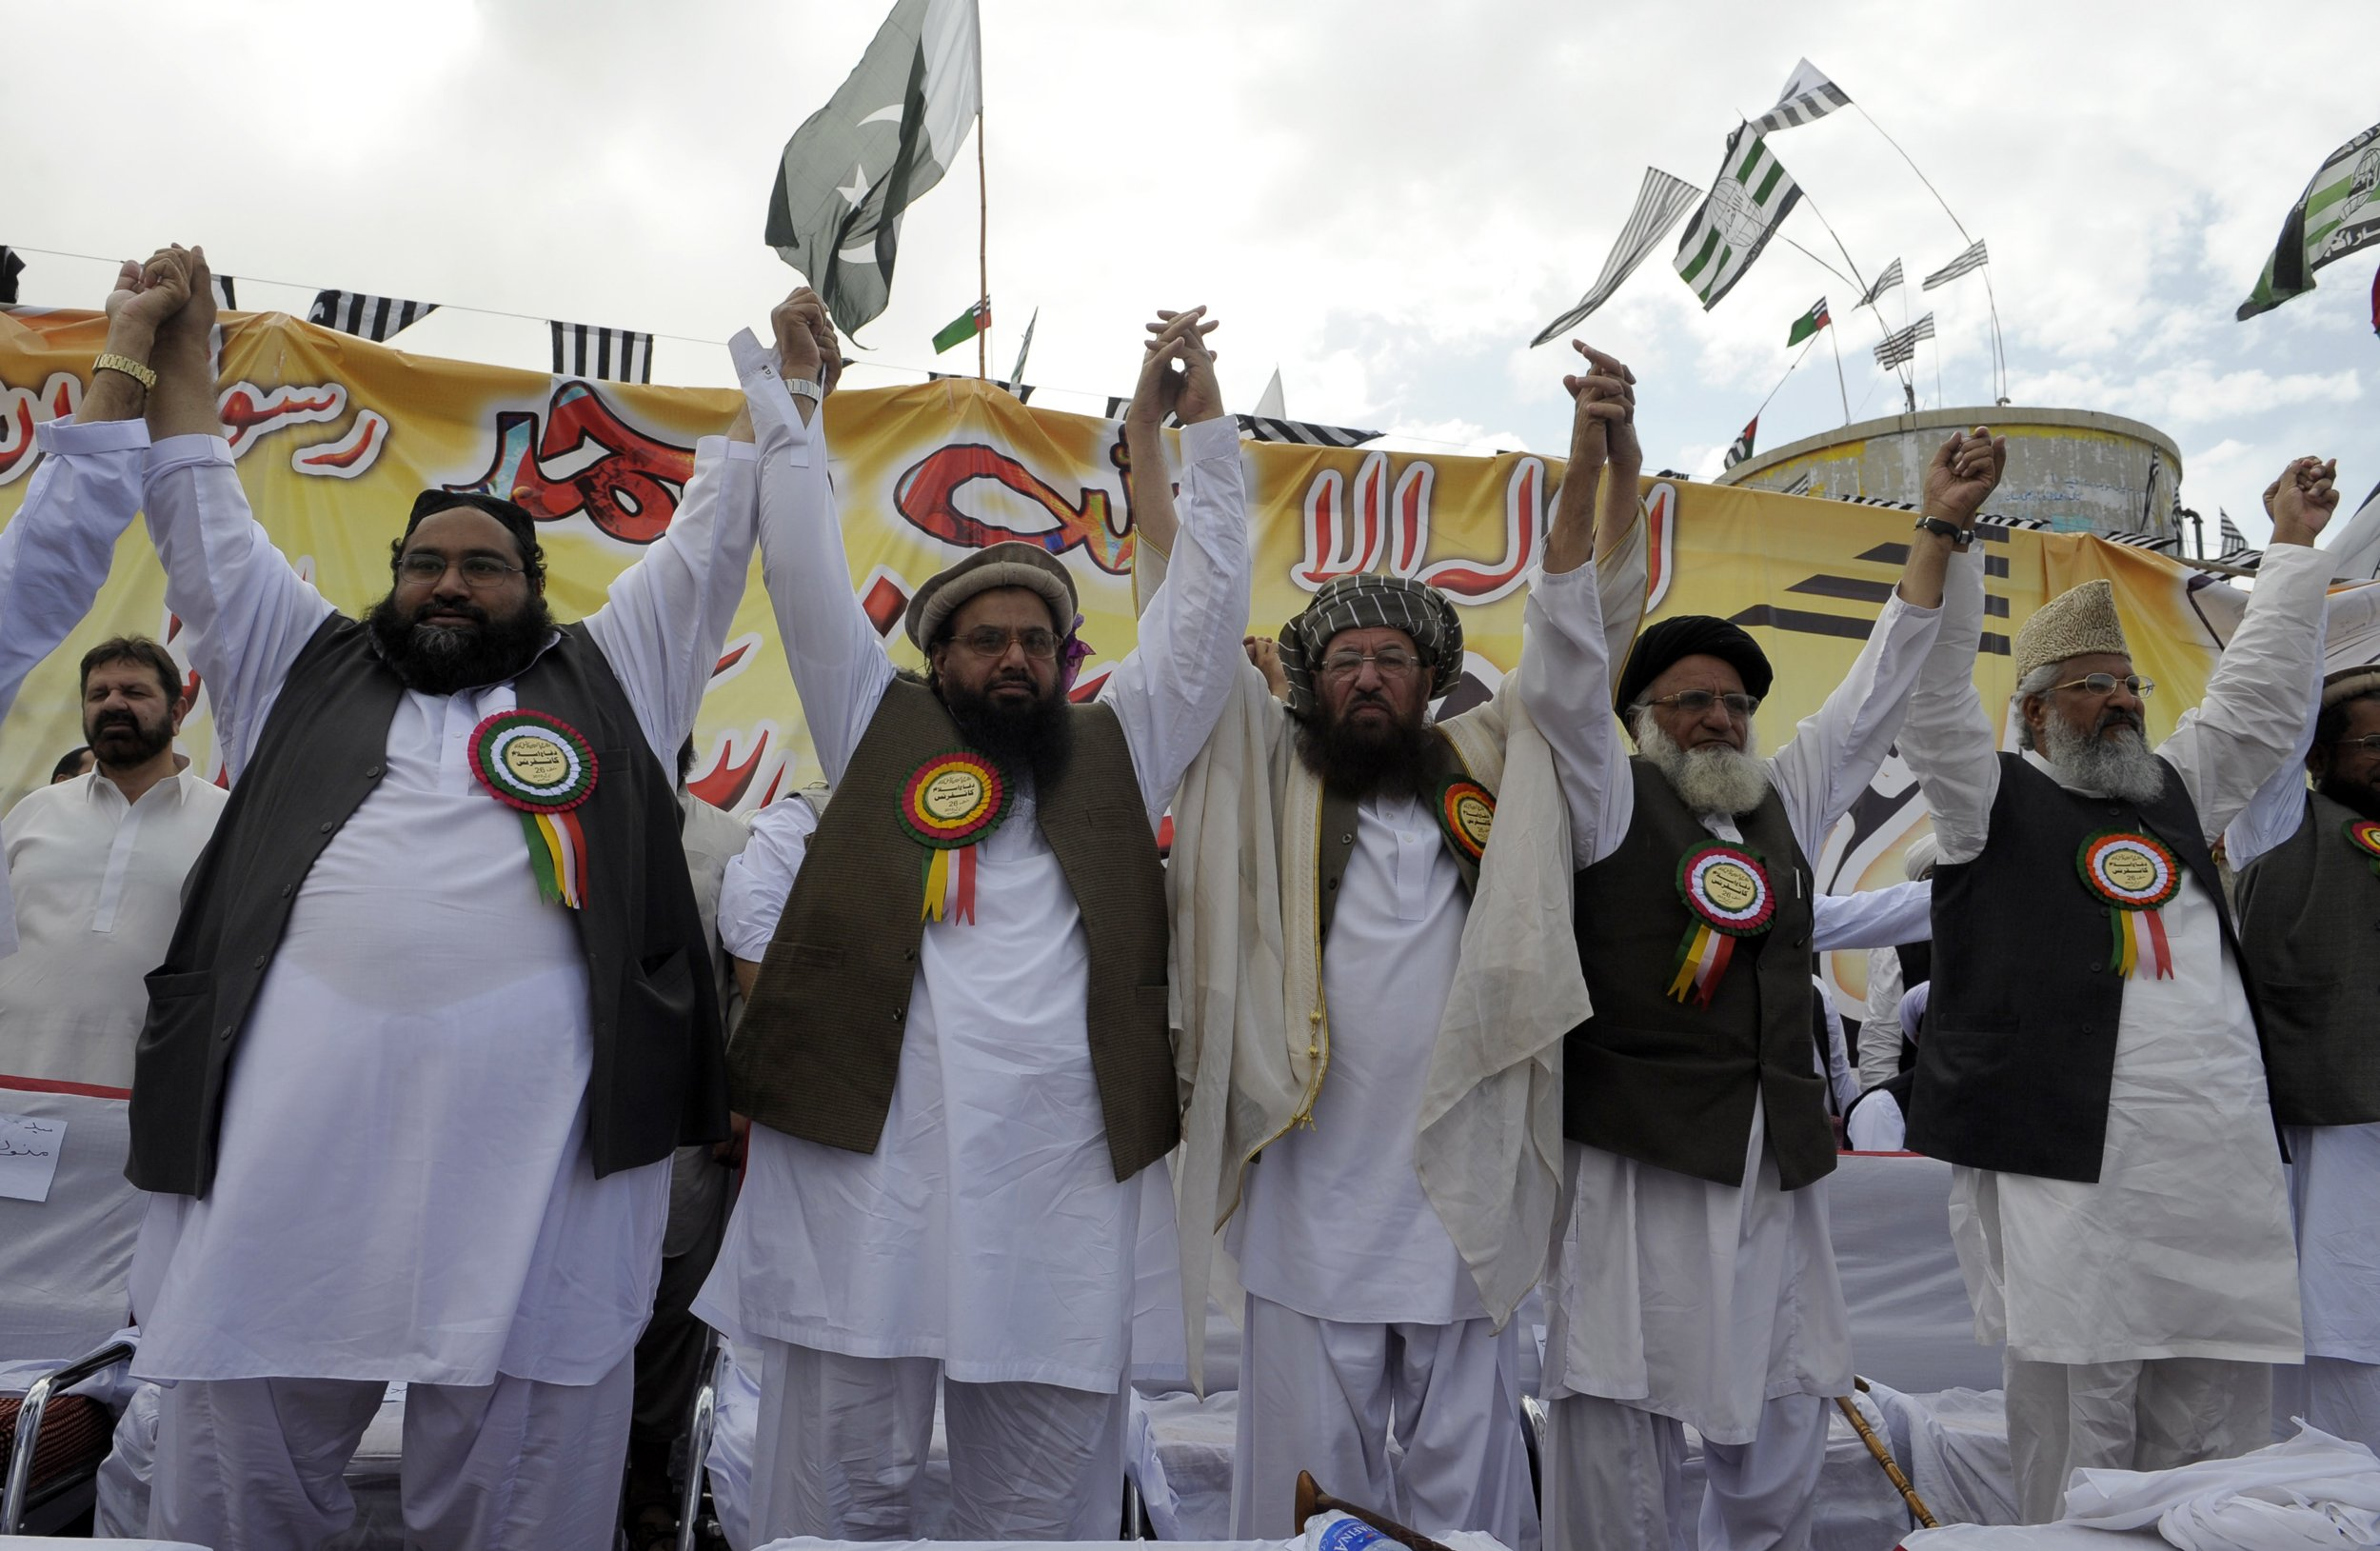 Hafiz Saeed (2nd L), the founder of Lashkar-e-Taiba, and Maulana Samiul Haq (C), chief of the Defence Council of Pakistan join hands with other leaders during an anti-US rally in Quetta on April 26, 2012, against the reopening of the NATO supply route to Afghanistan. Islamabad on April 26 reiterated its opposition to US drone attacks in its territory as Washington's point man on Pakistan and Afghanistan arrived amid efforts to mend fractured relations. Relations between Pakistan and the United States plunged last year over the US raid that killed Osama bin Laden inside Pakistan and a NATO air strike near the border with Afghanistan that killed 24 Pakistani soldiers. AFP PHOTO/BANARAS KHAN